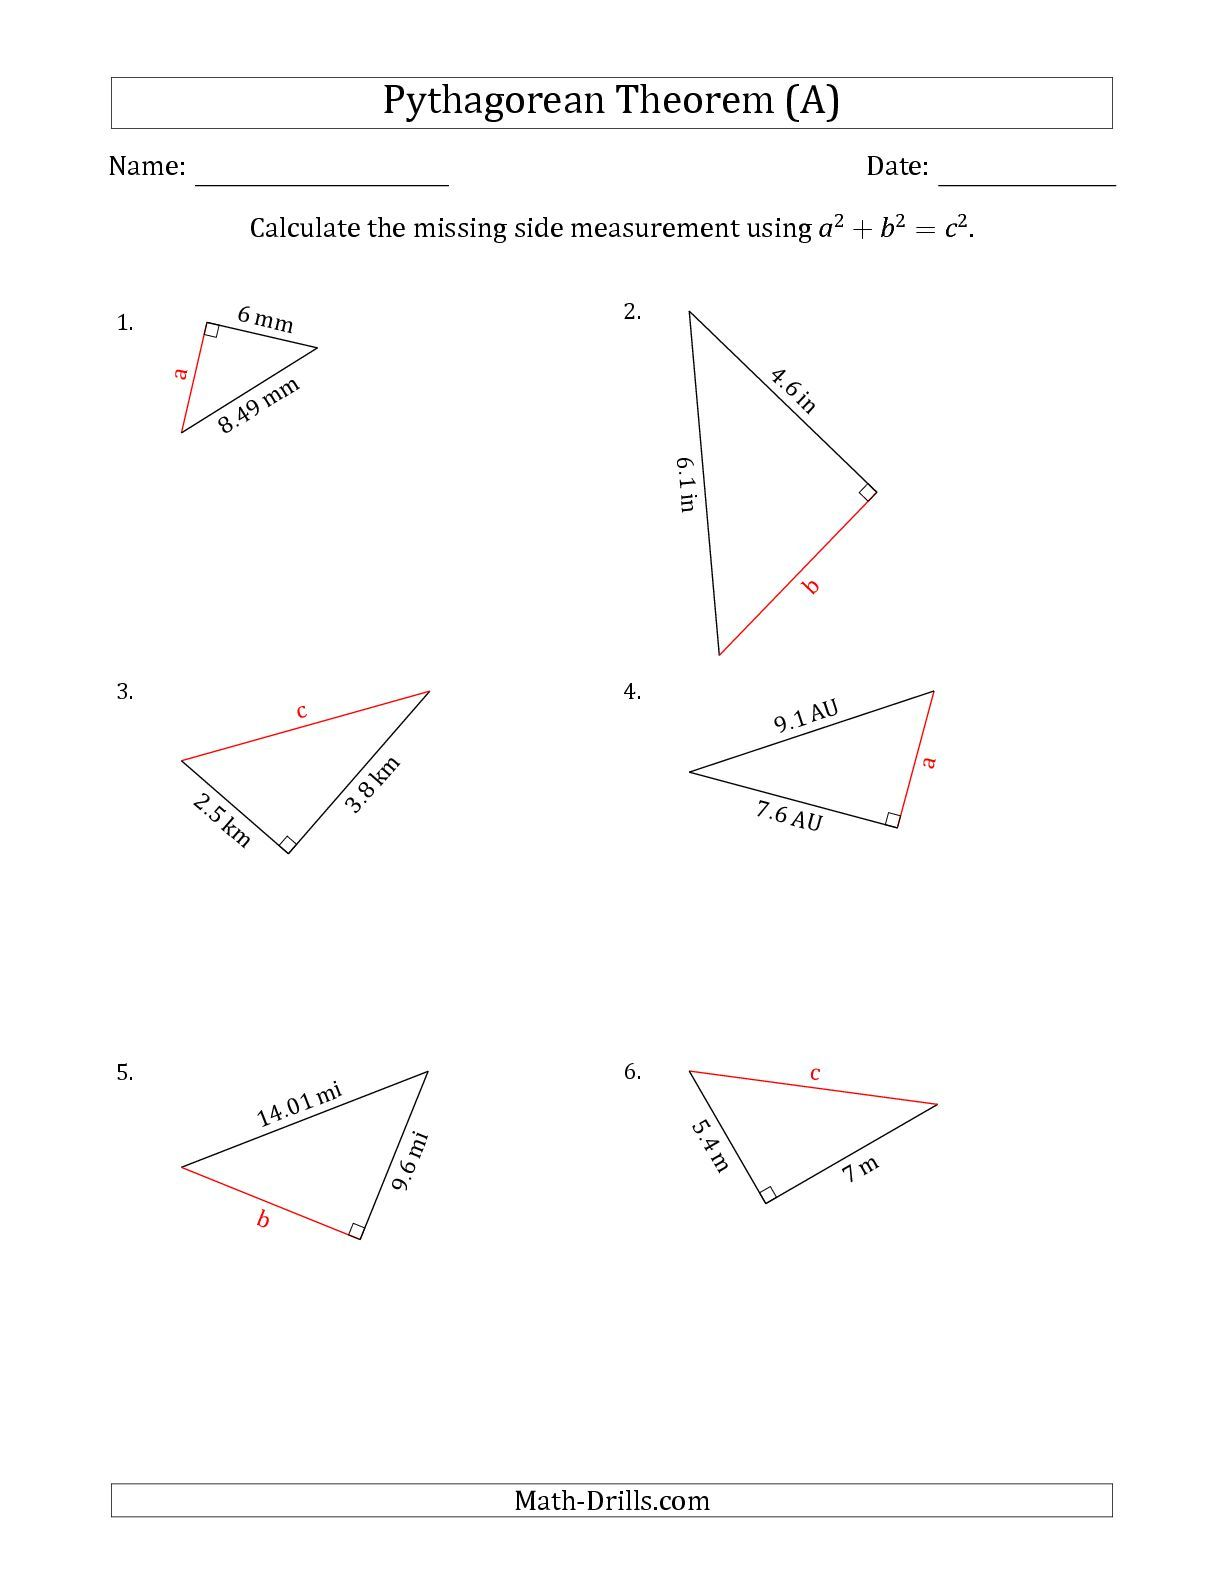 worksheet Worksheet Pythagorean Theorem the calculate a side measurement using pythagorean theorem a